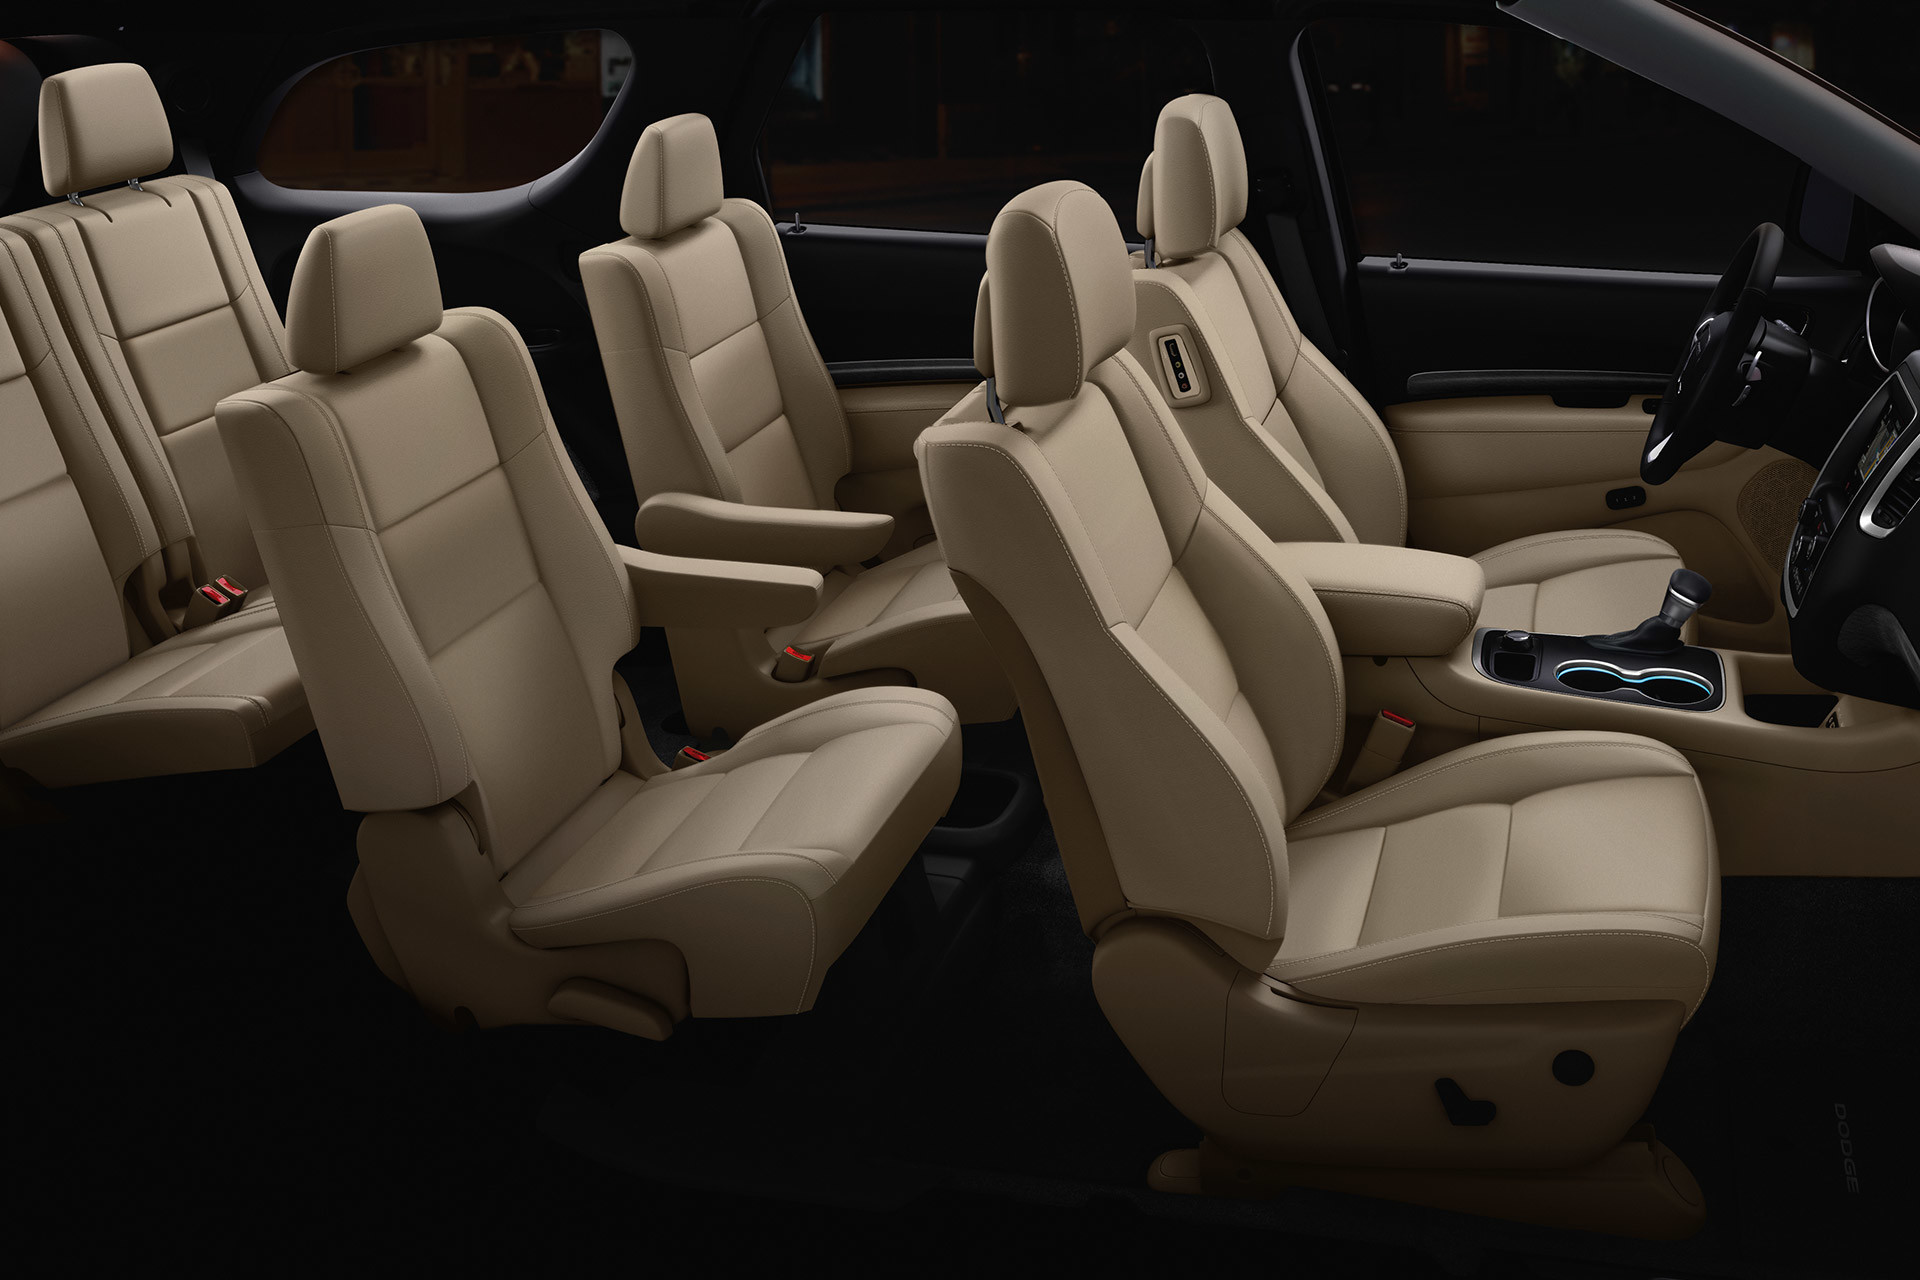 2020 Dodge Durango 7 Seater Suv Interior Gallery Dodge Canada